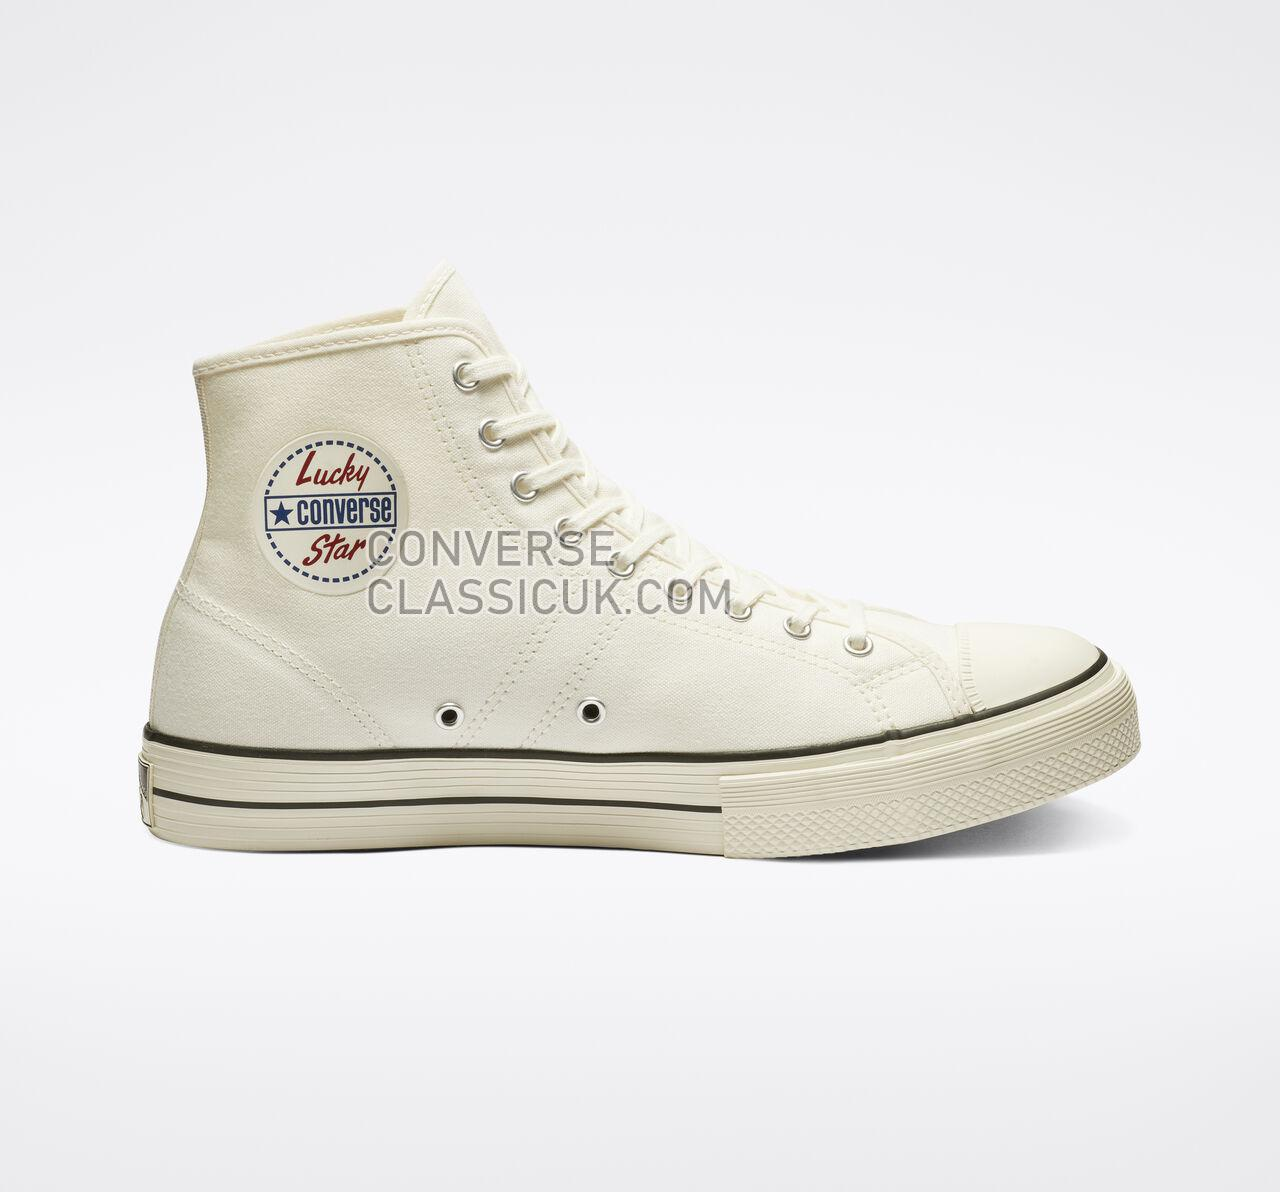 Converse Lucky Star High Top Mens Womens Unisex 163158C Egret/Black/Egret Shoes